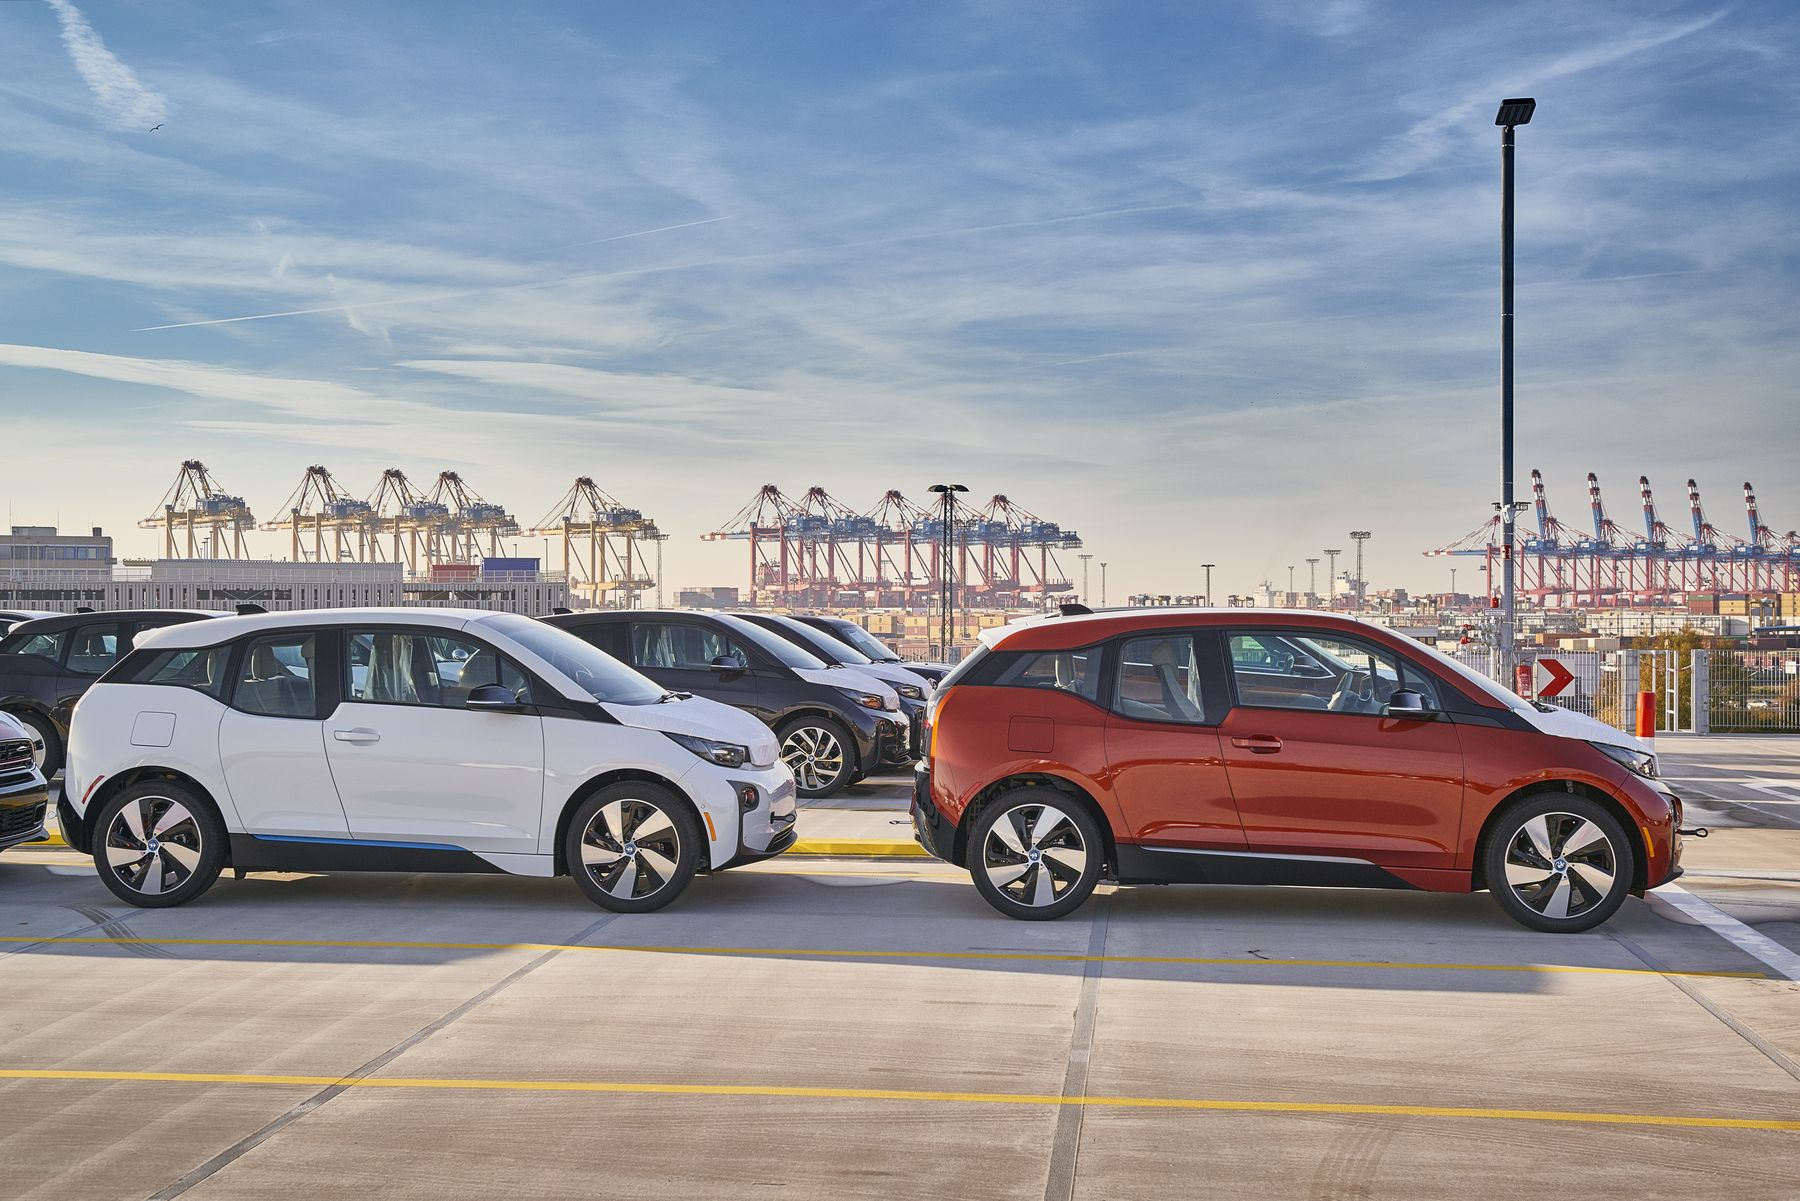 Consumer Reports Used Cars Beautiful Consumer Reports Used Cars to Avoid 2014 Bmw I3 2012 2013 2015